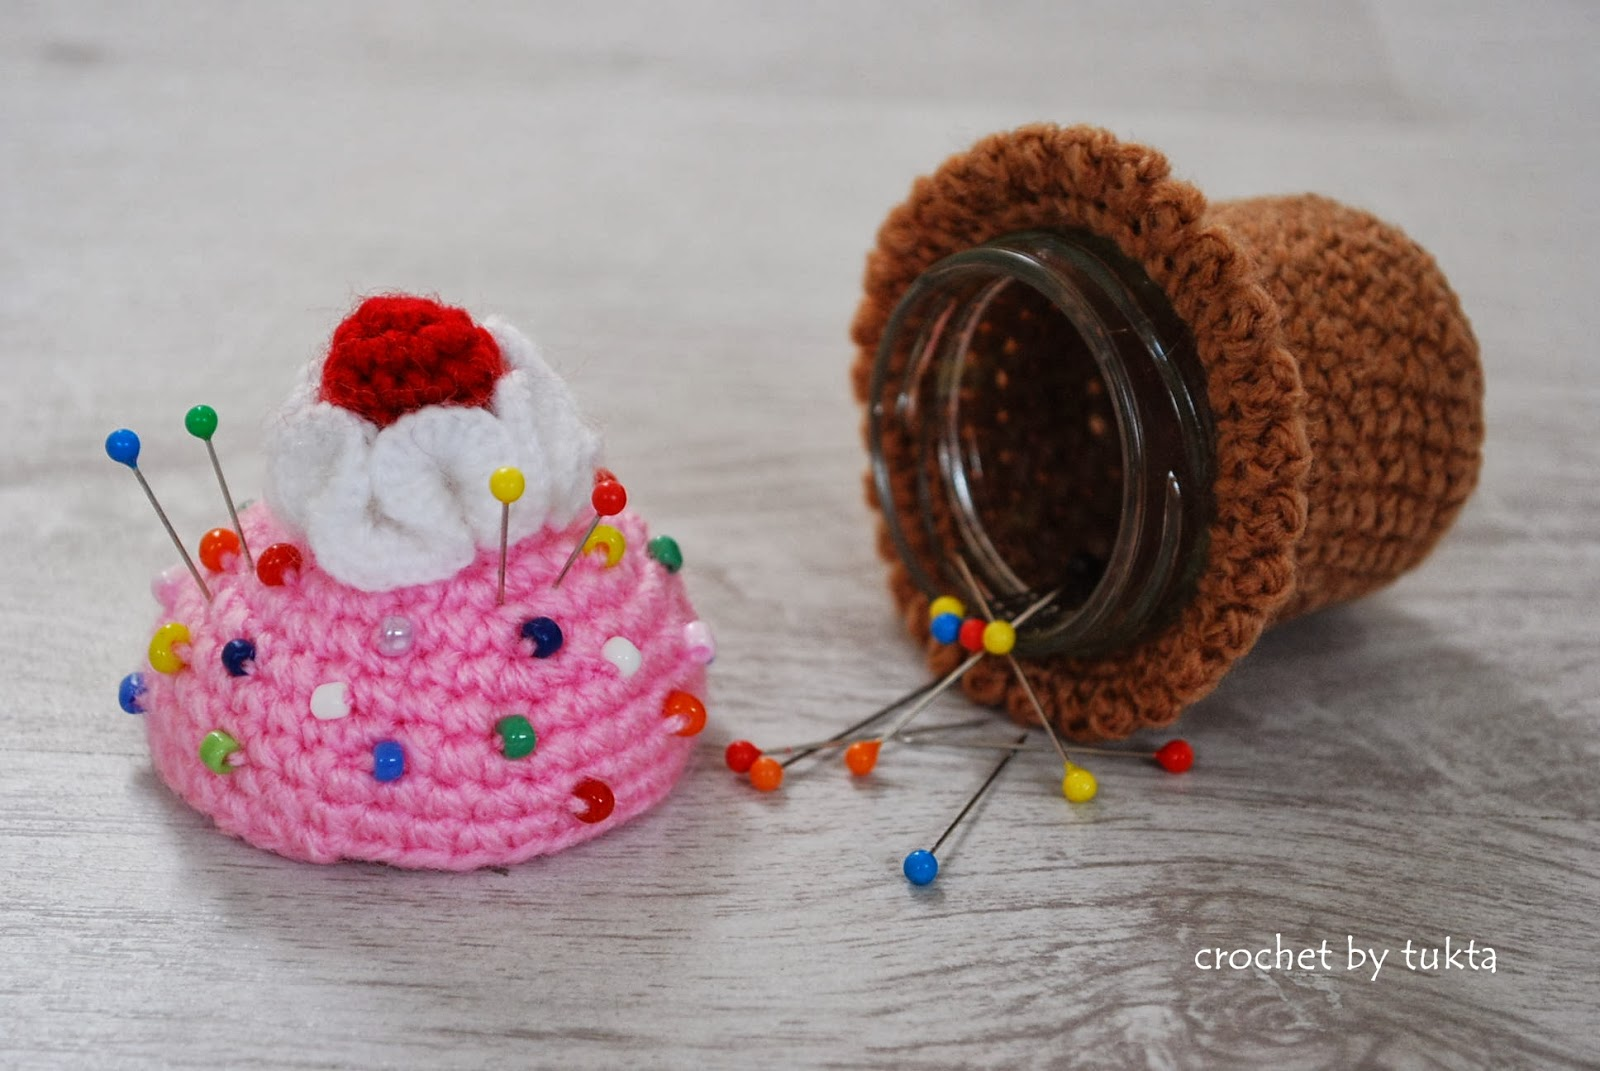 Crochet by Tukta: pin cushion